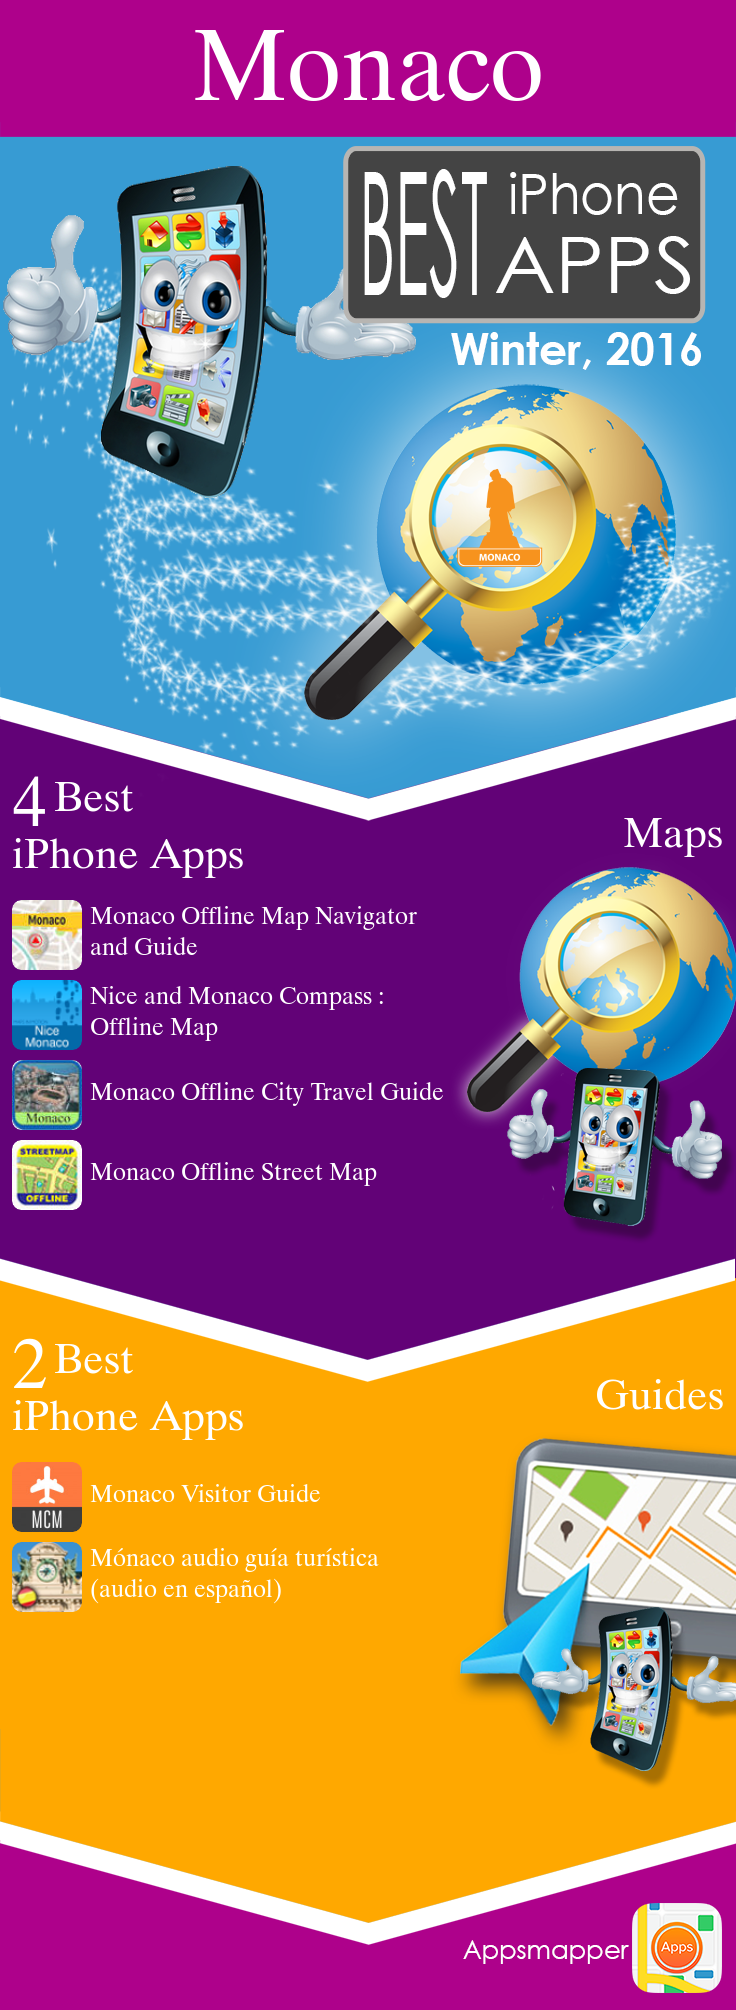 Monaco iPhone apps: Travel Guides, Maps, Transportation, Biking, Museums, Parking, Sport and apps for Students.